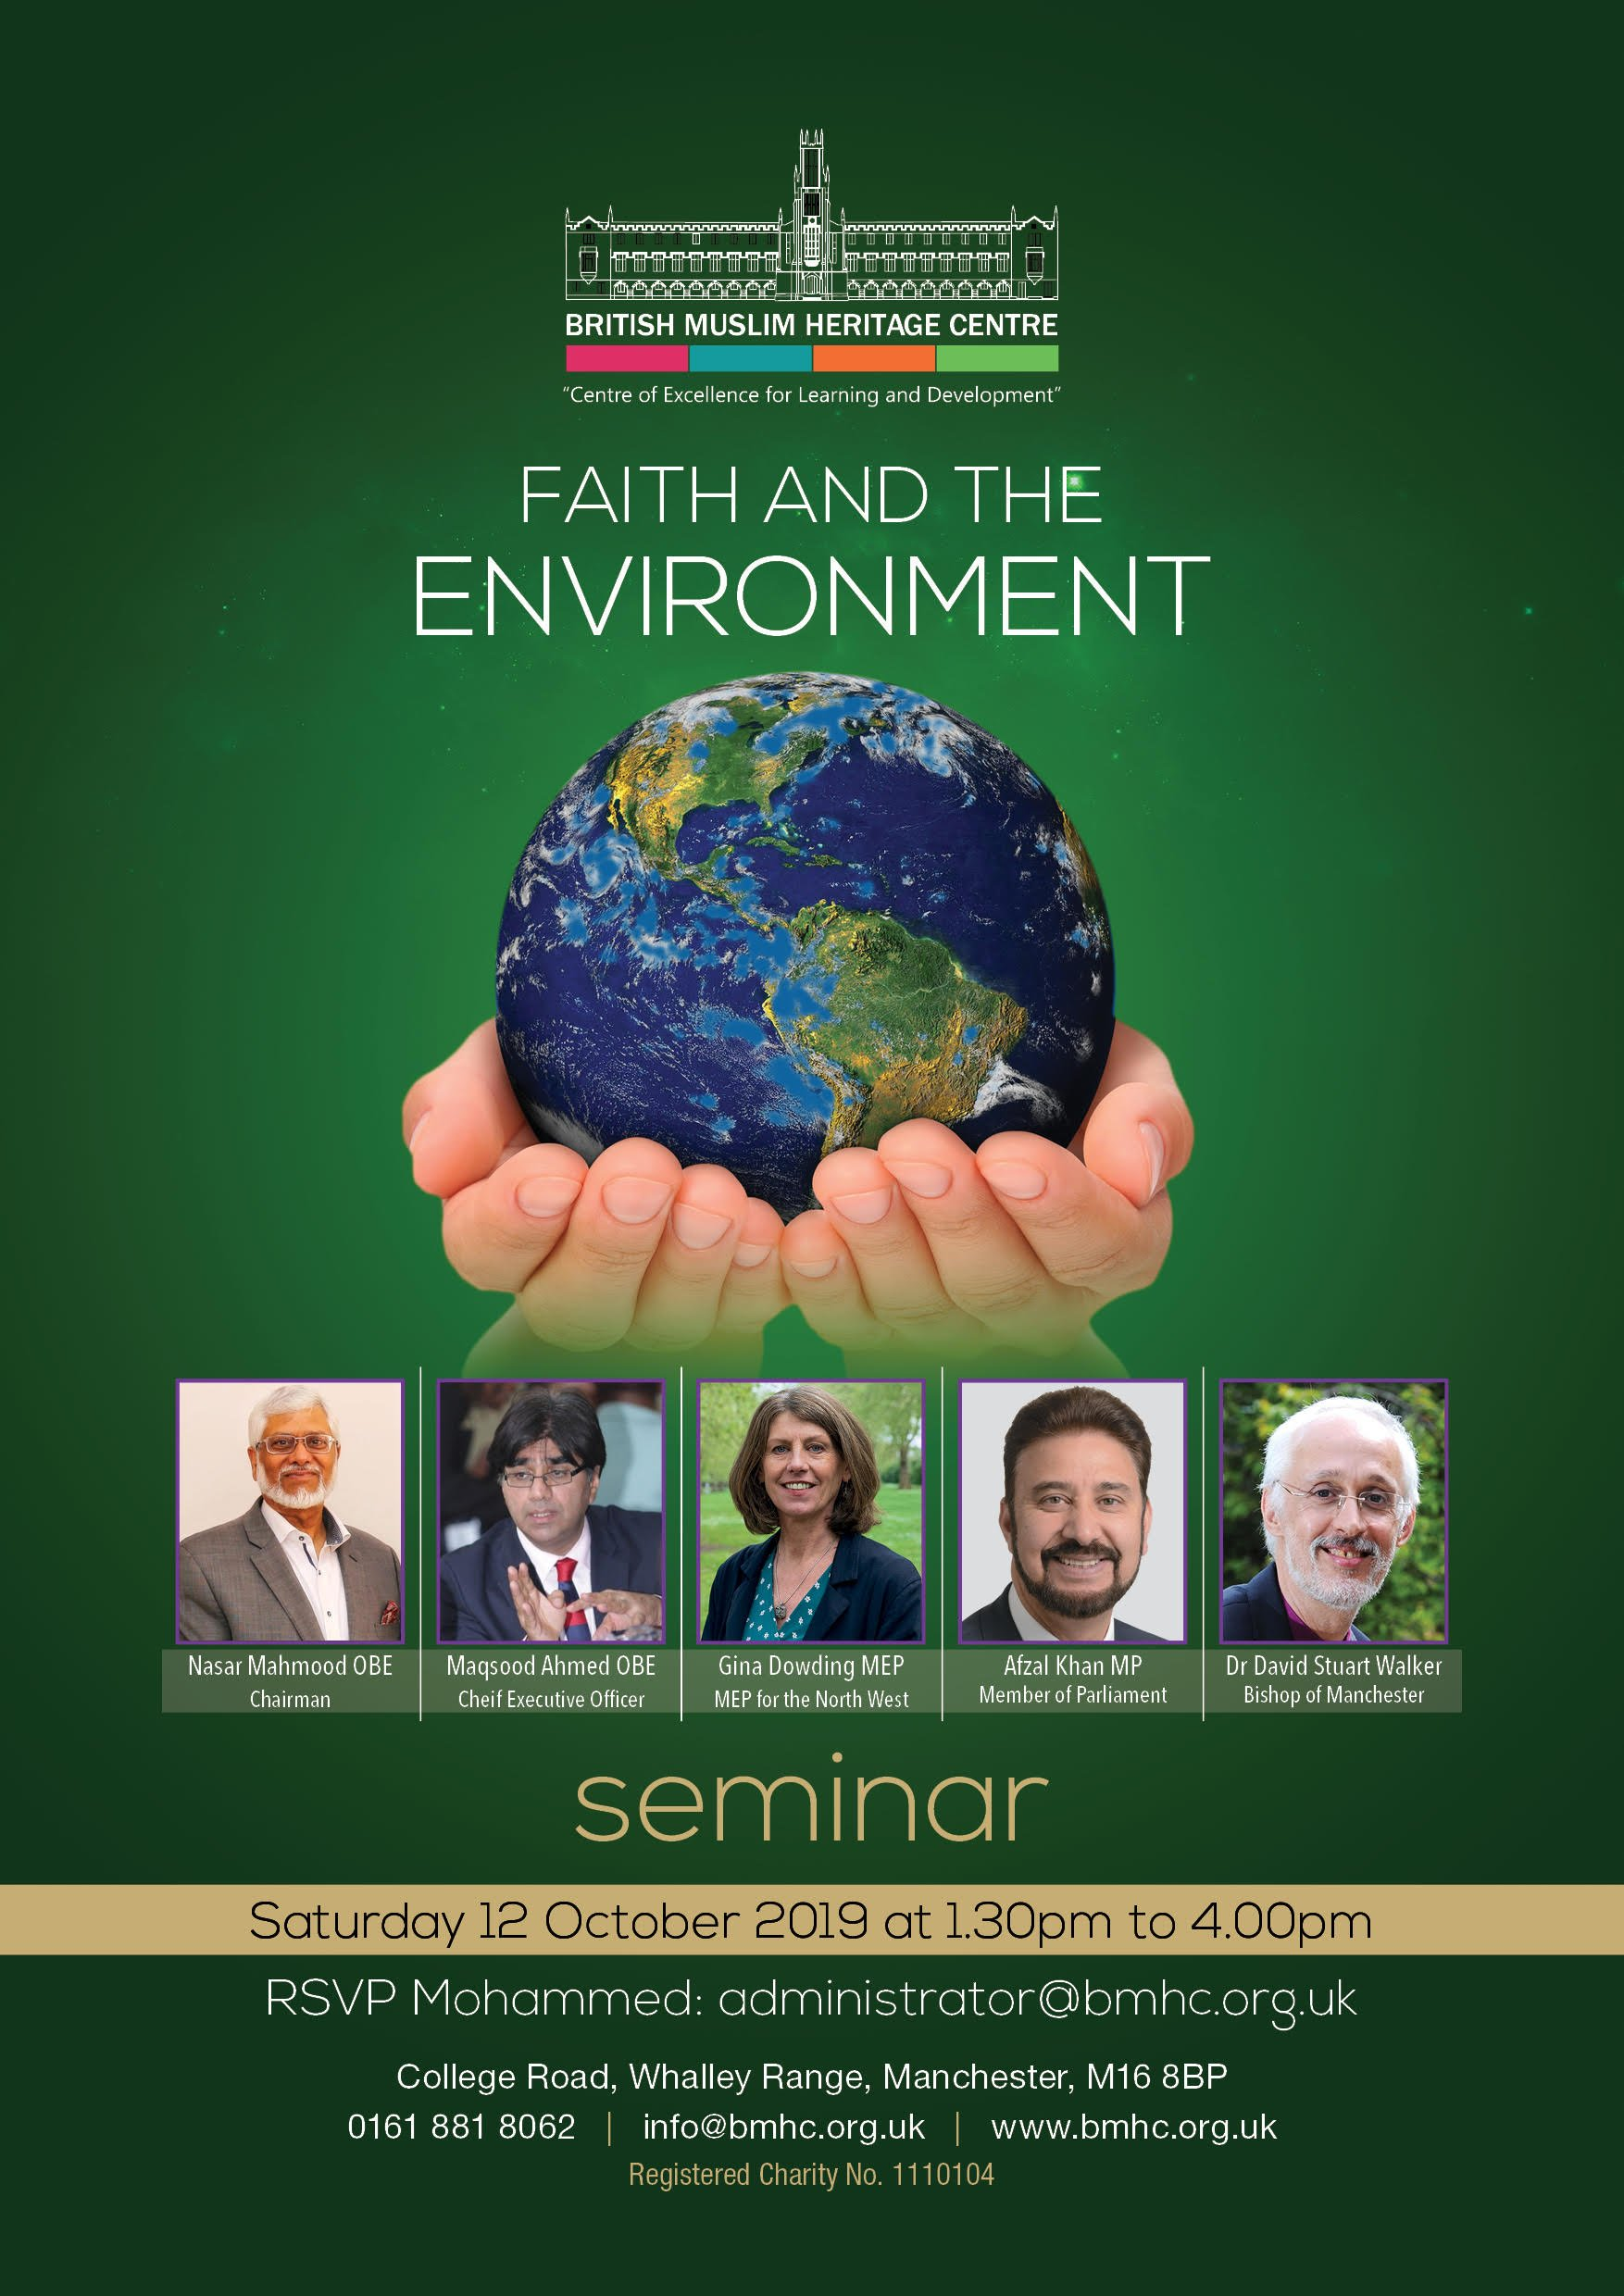 Faith and the Environment